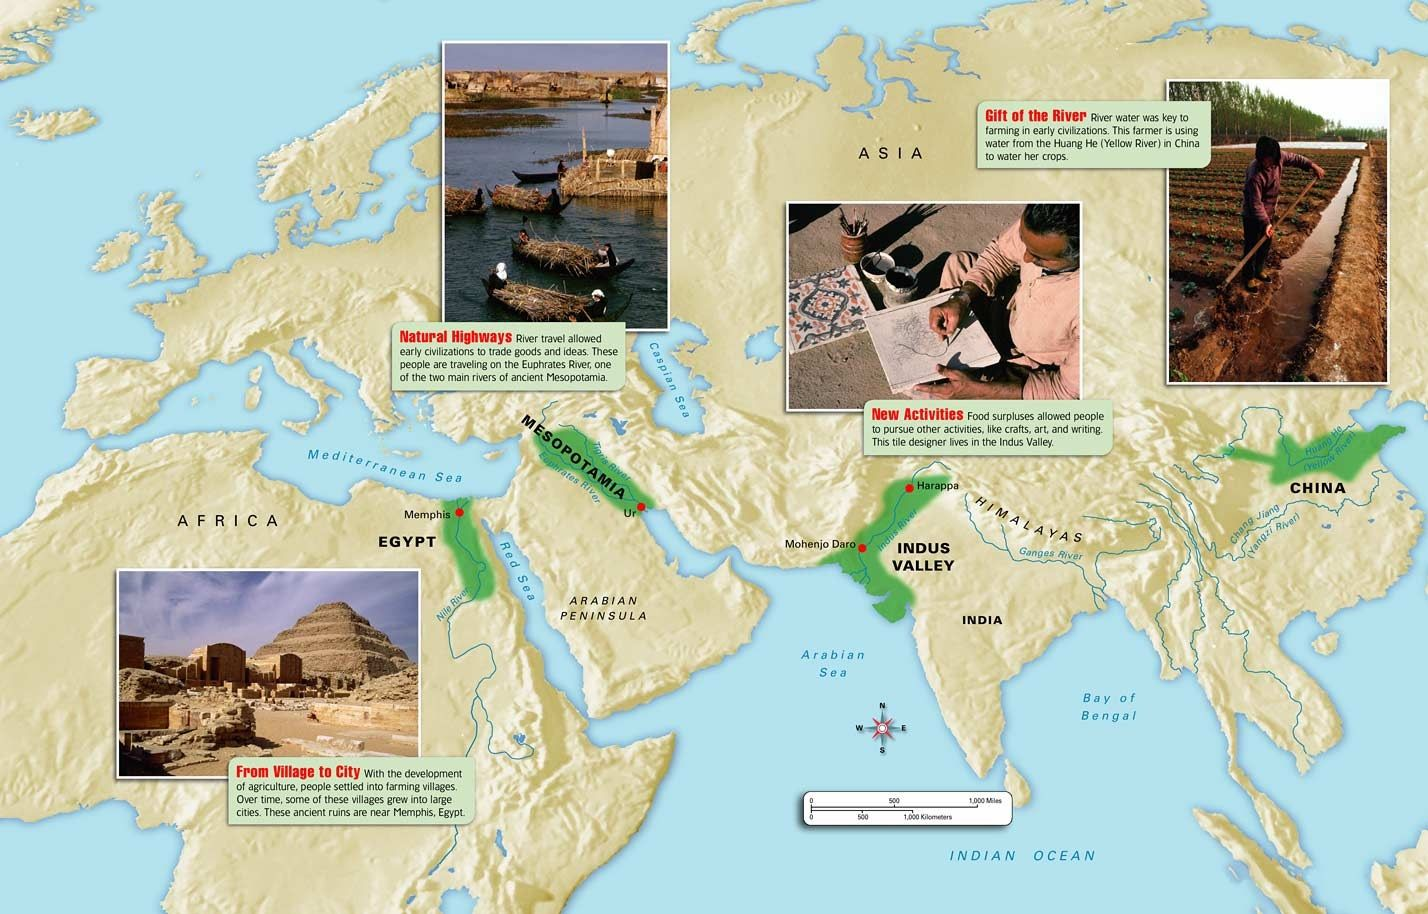 The Earliest Civilizations Emerged In A Egypt Along The Nile River Valley At About 3 000 Bce B In The Indus River Valley In What Is Now Modern Day India Pak